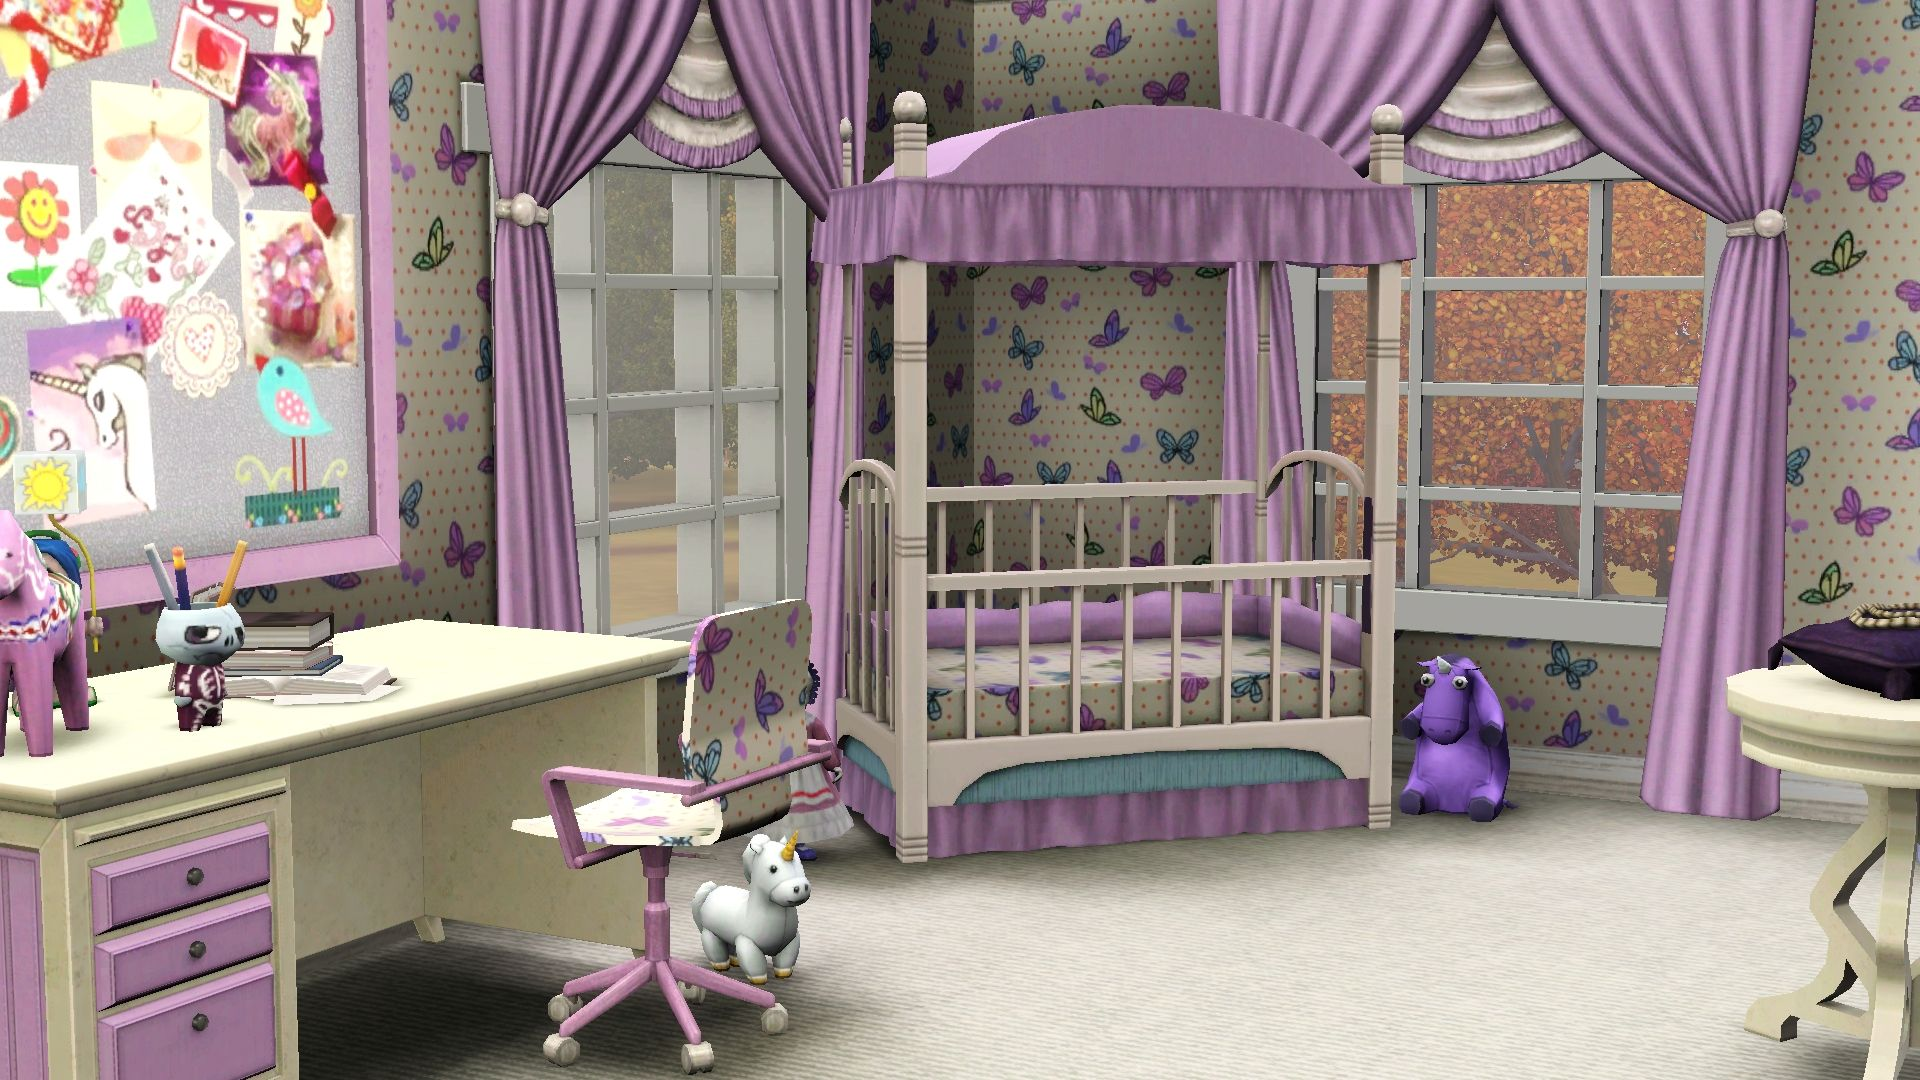 Screenshot The Sims 3 Cute pink baby room For more daily Sims 3